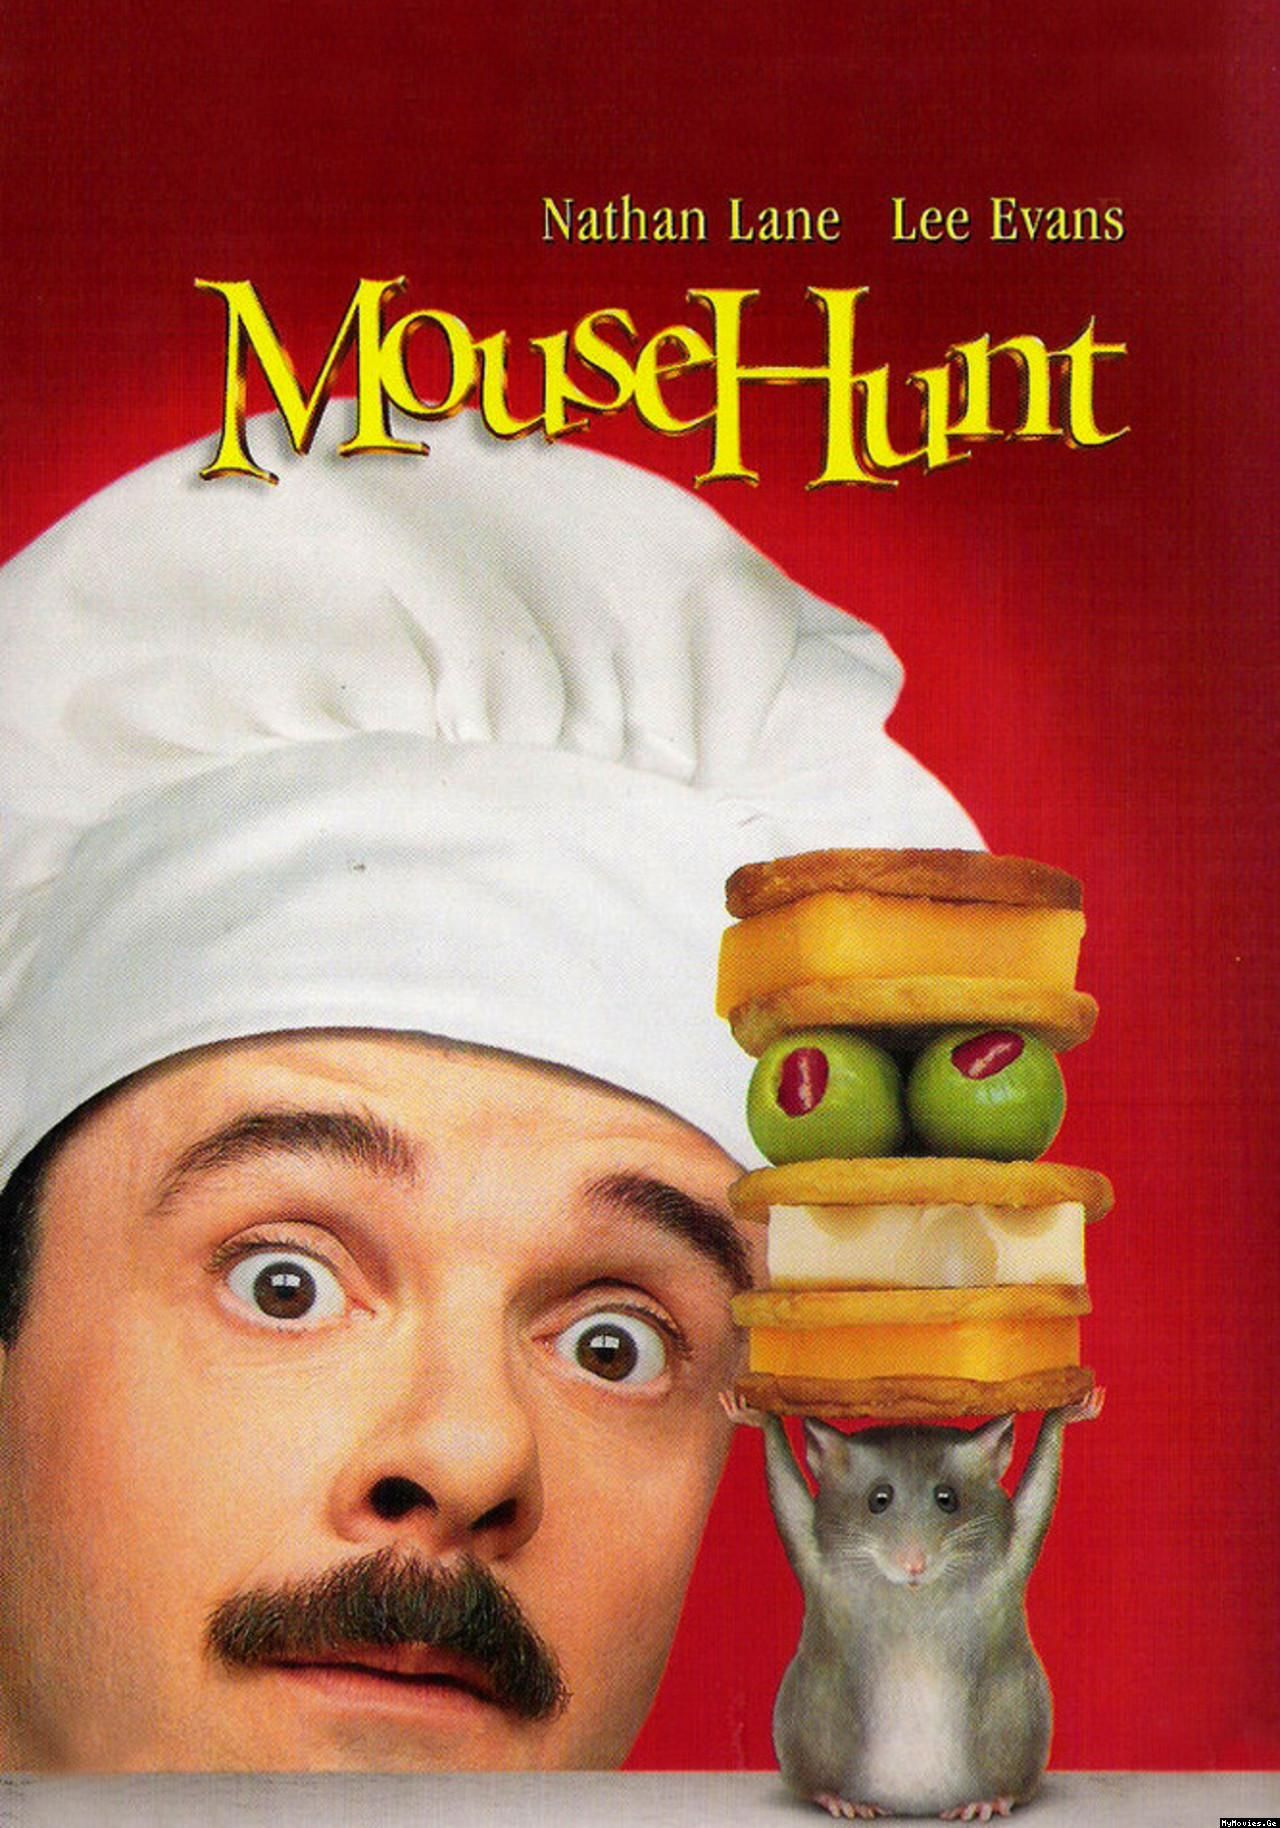 Mouse hunt one of my favorite movies as a kid movies tv mouse hunt one of my favorite movies as a kid spiritdancerdesigns Choice Image